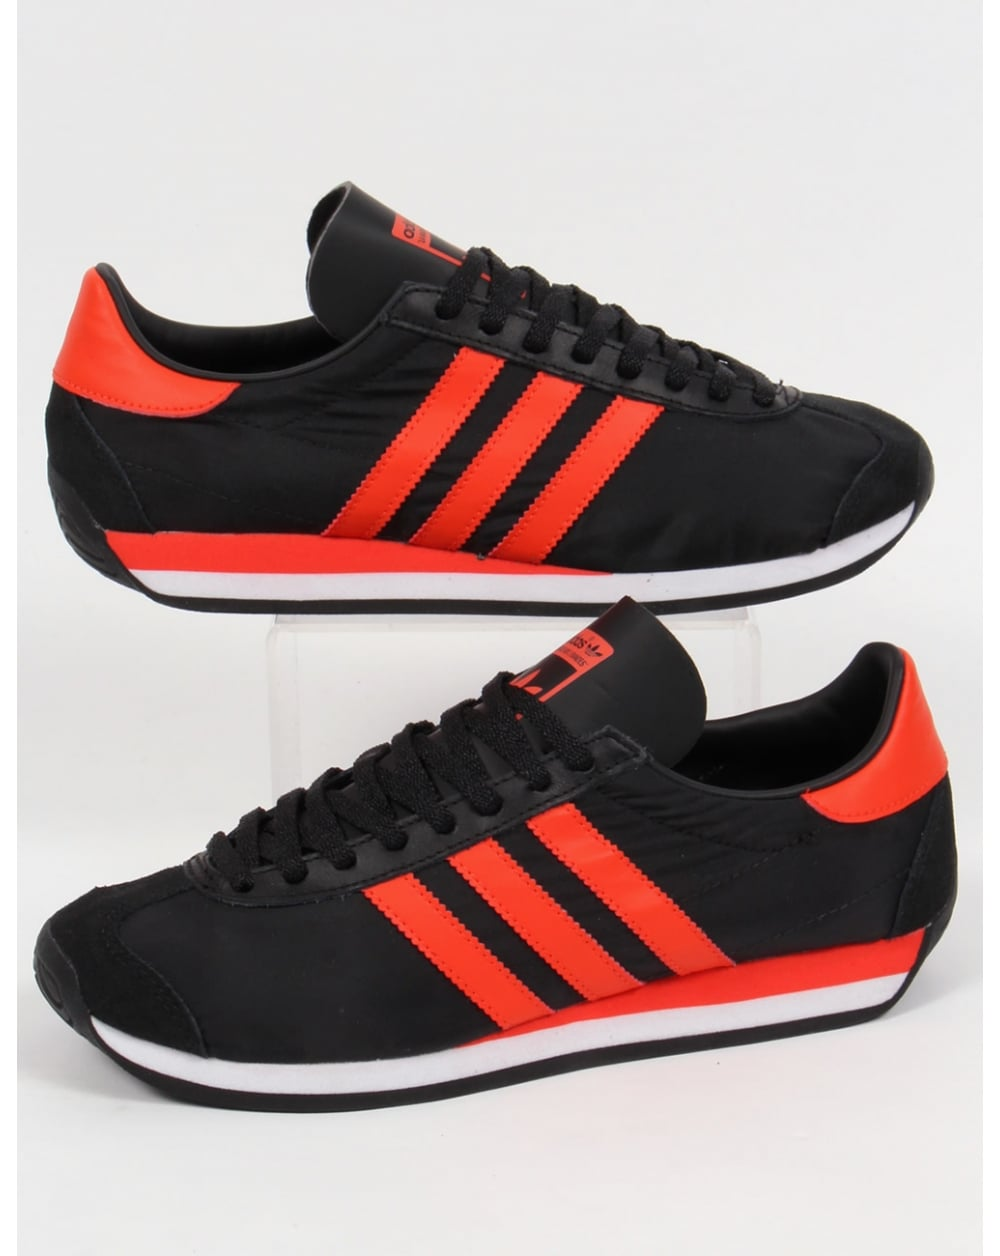 best sneakers 366bc 6e5ae adidas Trainers Adidas Country OG Trainers Blackorange